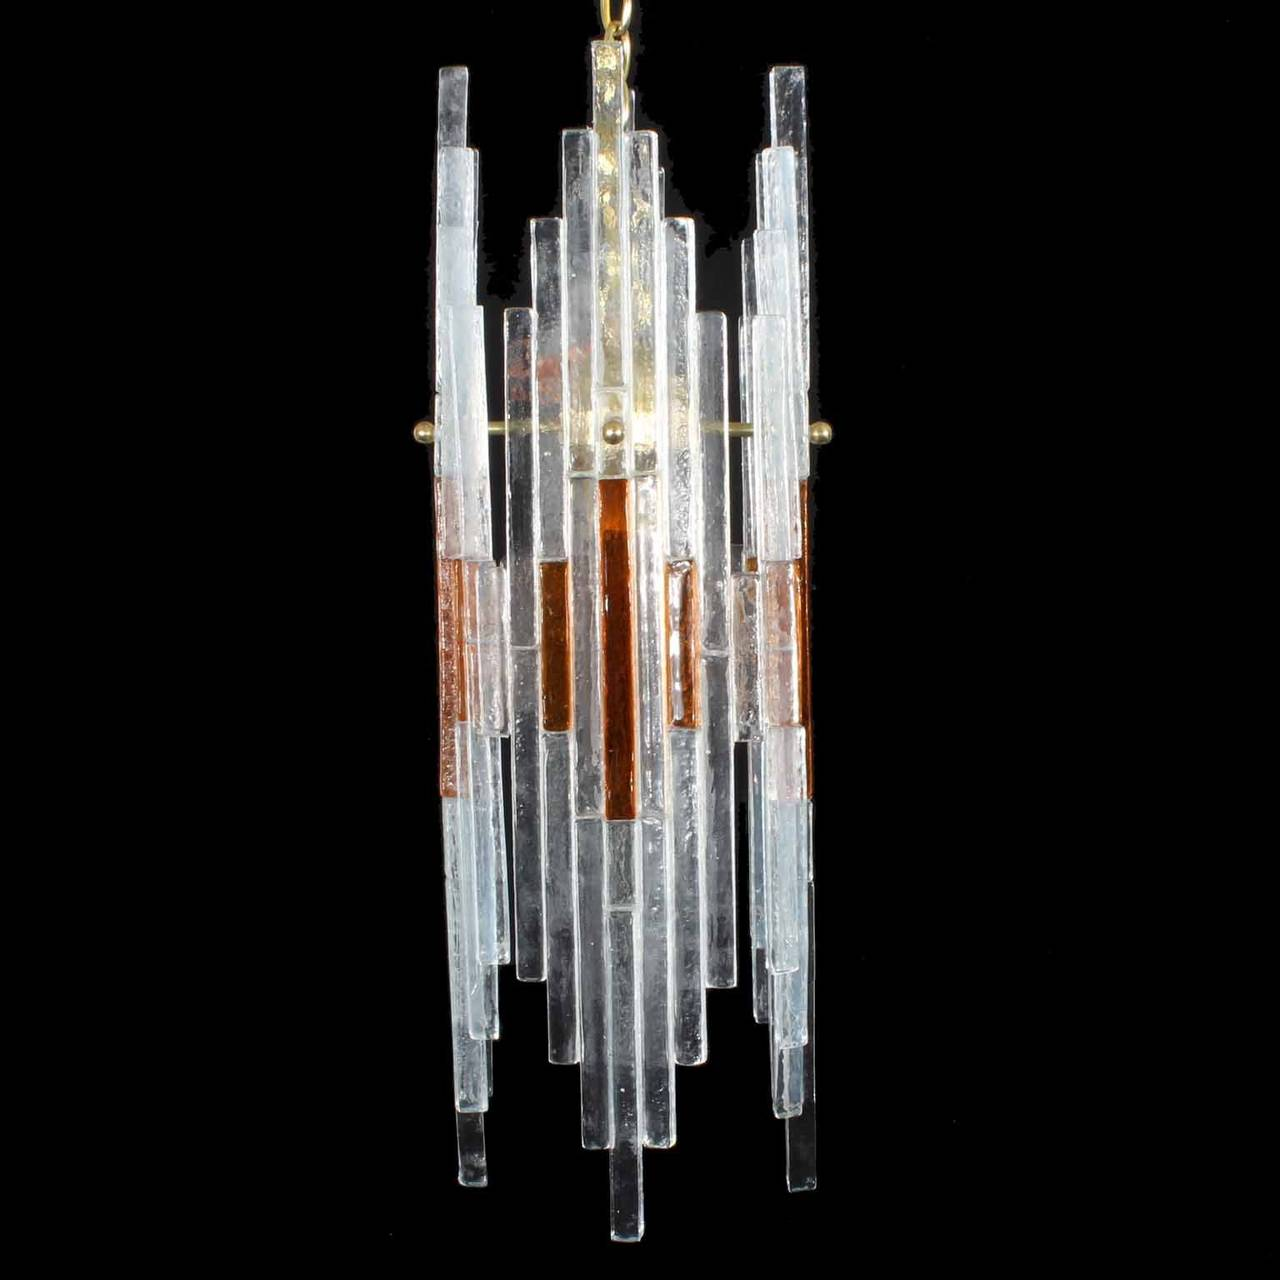 Icy cool mid century Italian light fixture with geometric art glass panels of clear and amber glass attached to a brass frame. Dramatic cubist design. Newly cleaned and wired. Accepts up to a  100 watt regular light bulb.